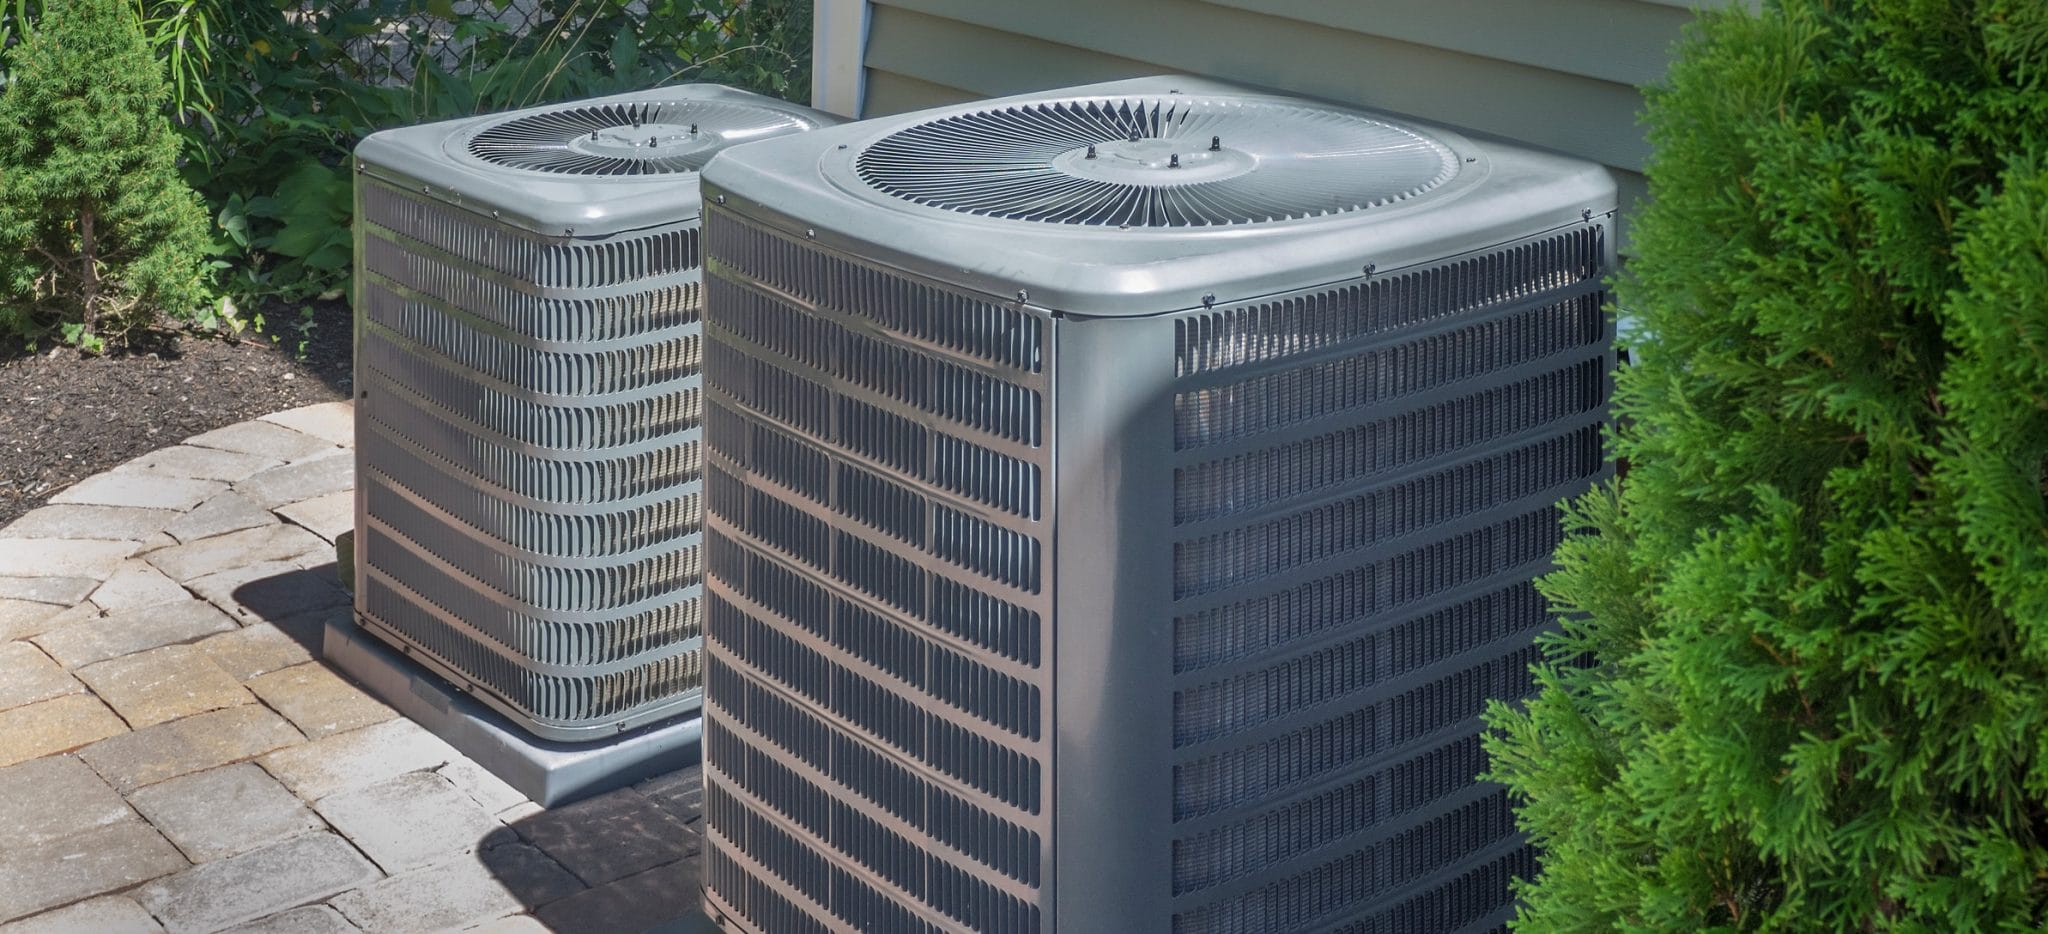 Residential heating and air units